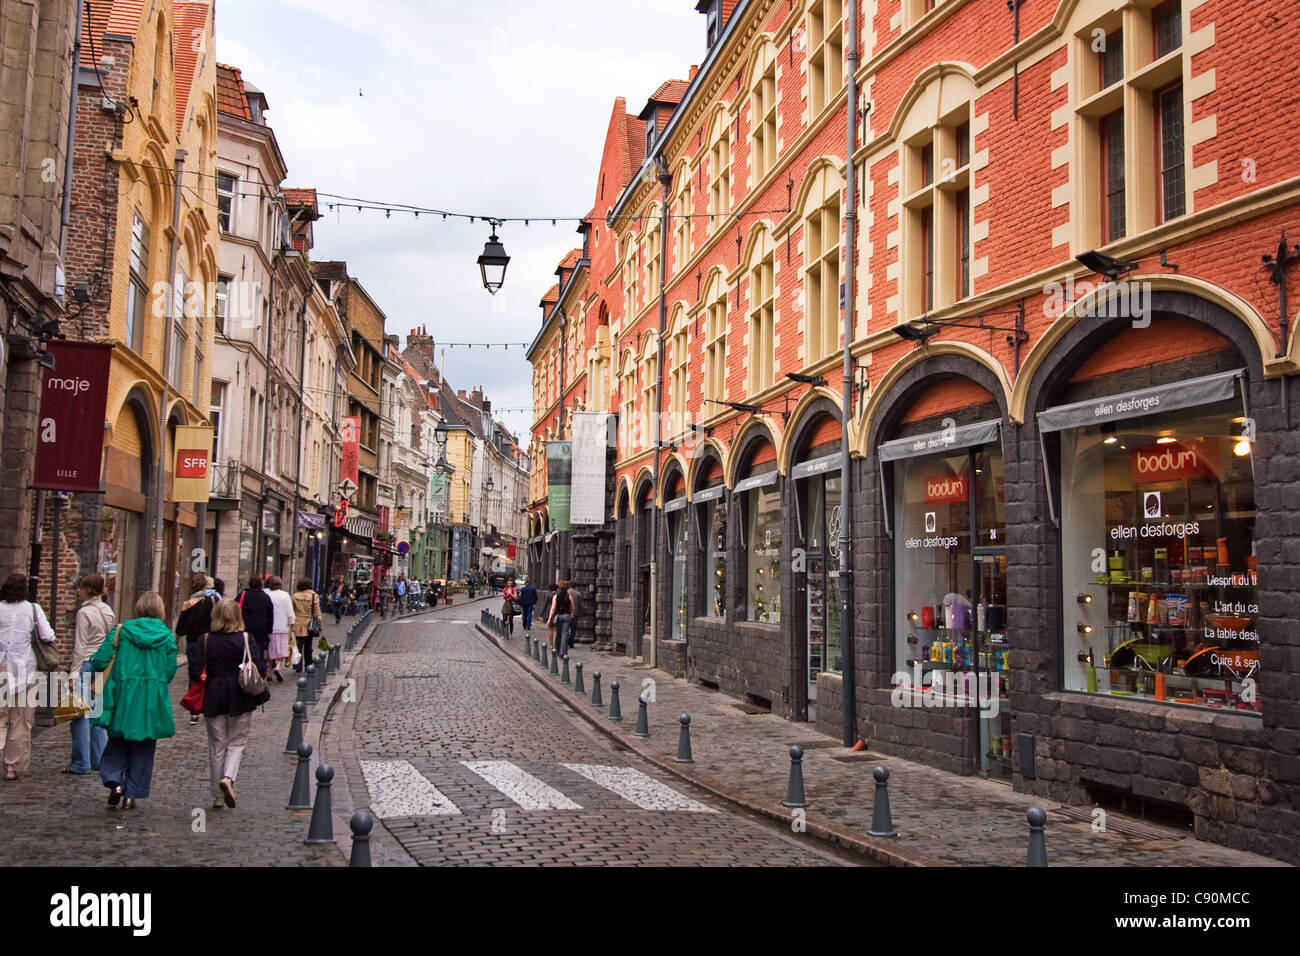 rue de la monnaie lille france stock photo 39968668 alamy. Black Bedroom Furniture Sets. Home Design Ideas